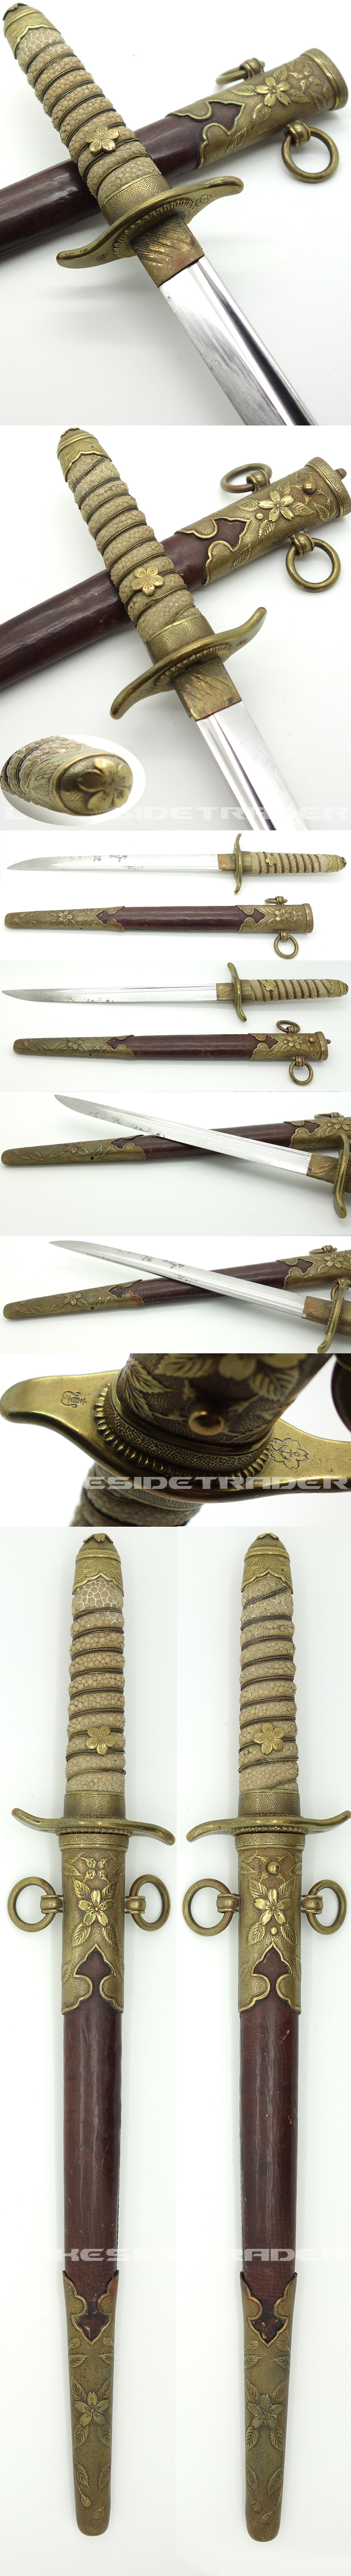 Early Japanese Navy Dirk